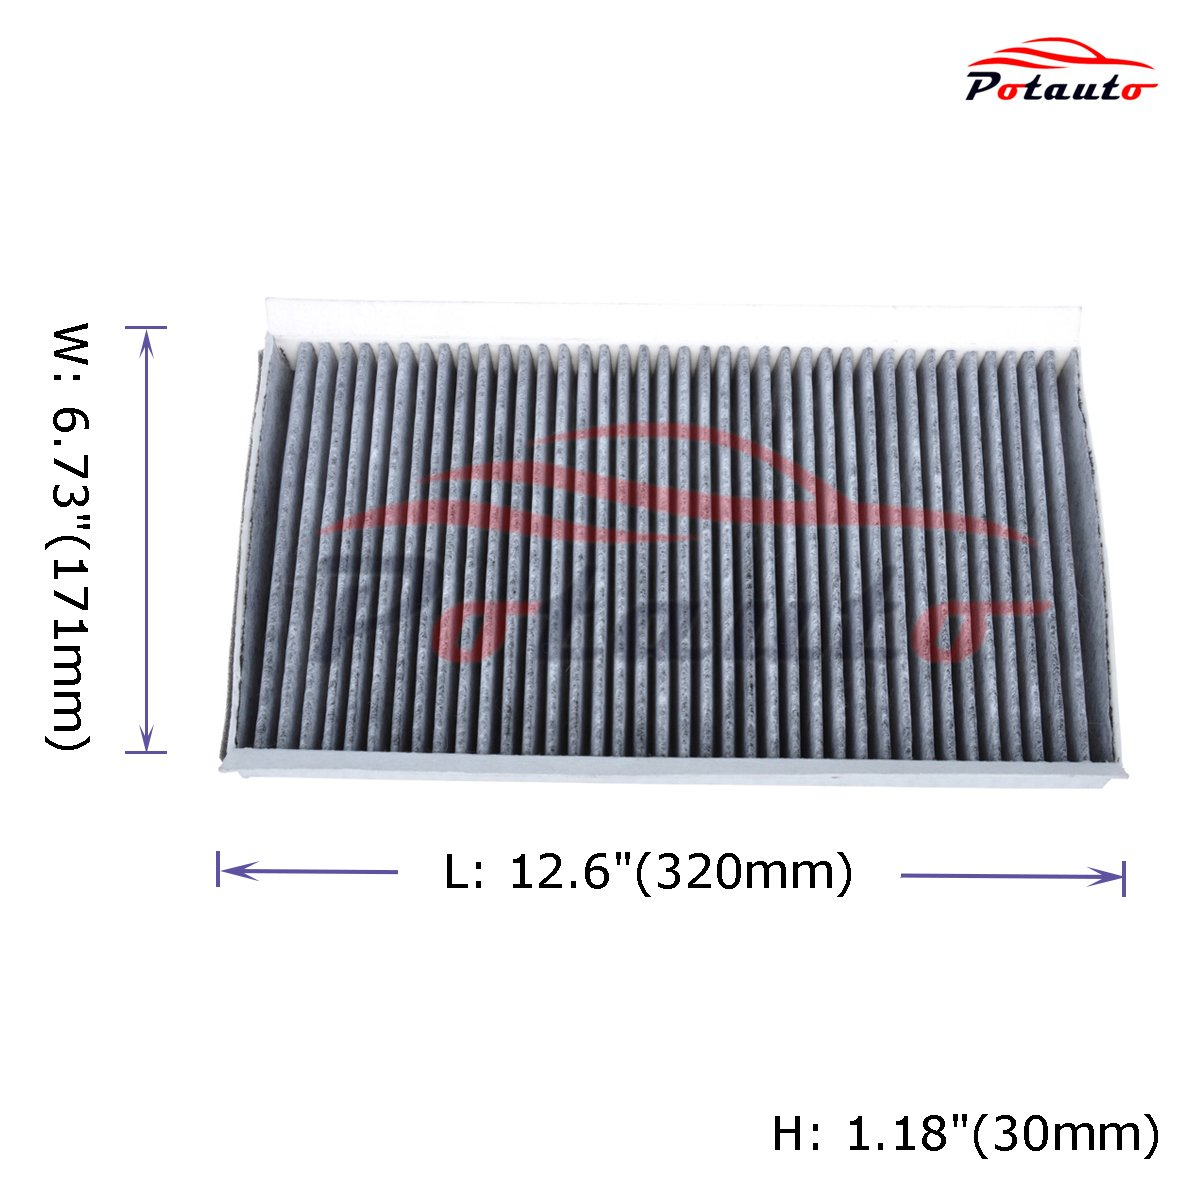 Replacement Activated Carbon Car Cabin Air Filter for BMW Upgraded with Active Carbon 500 Series CF10103 POTAUTO MAP 3008C 600 Series M Series/